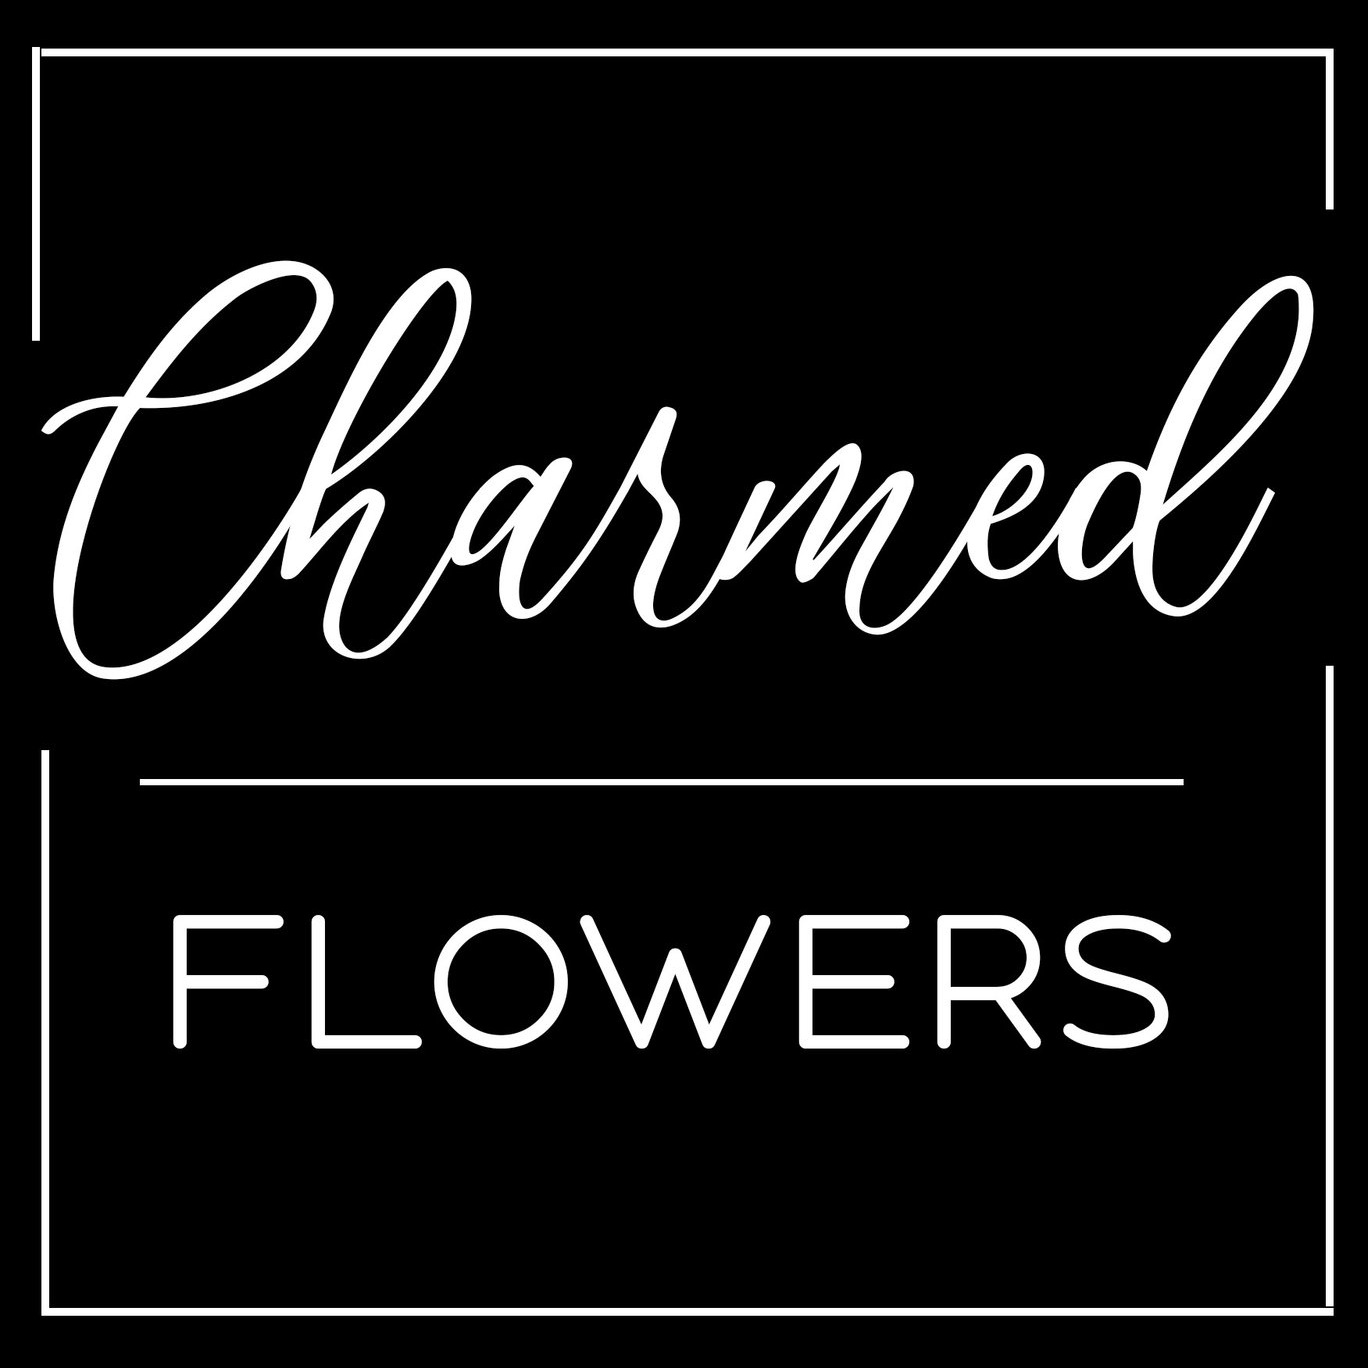 Charmed Flowers and Gifts